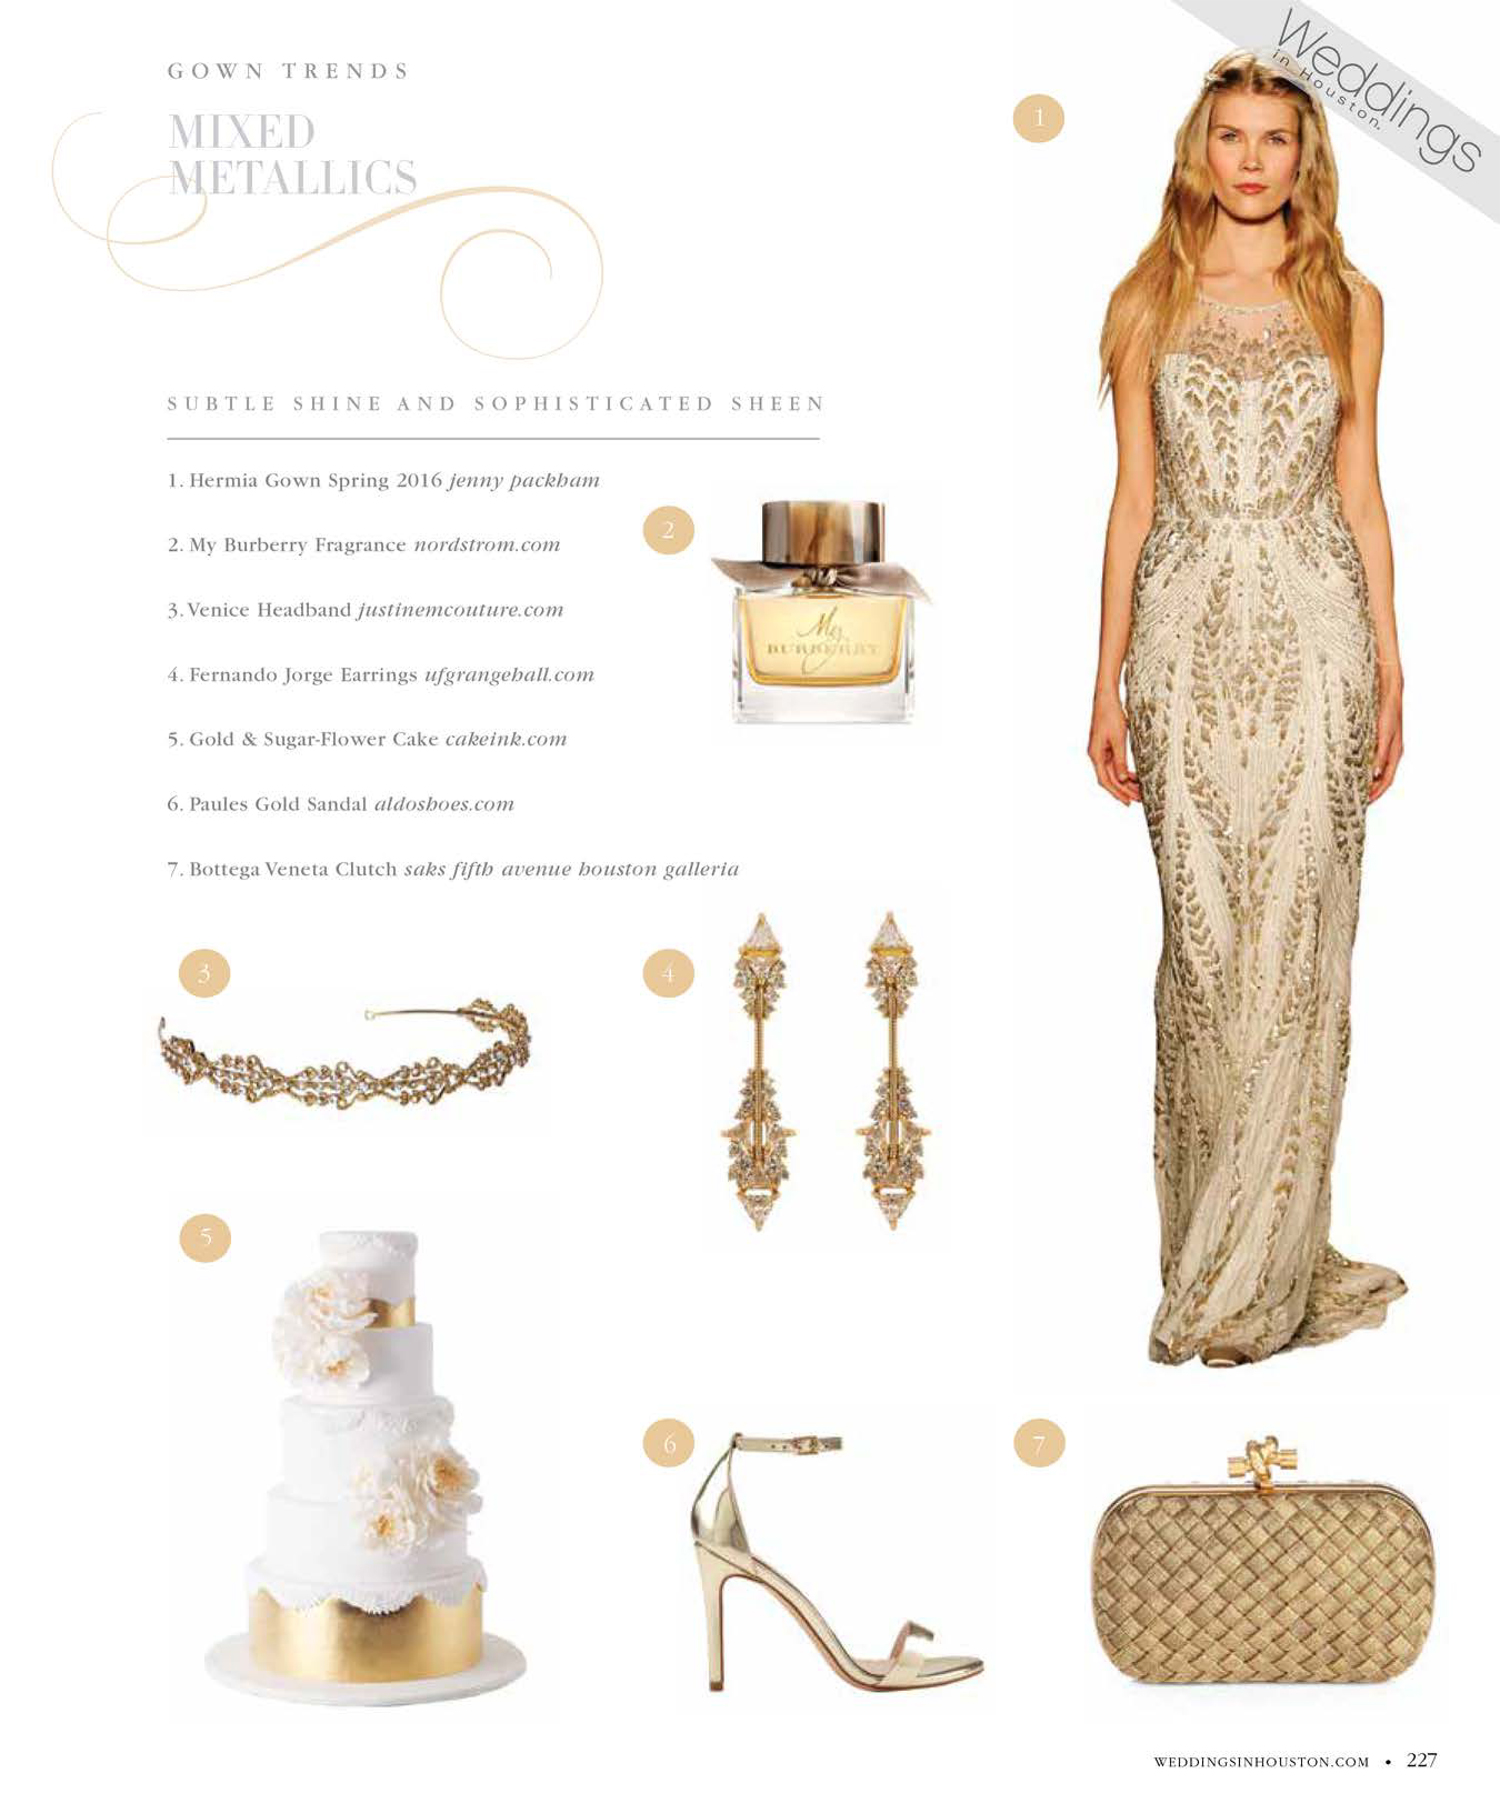 Weddings in Houston Magazine featuring Justine M Couture's Venice Headband